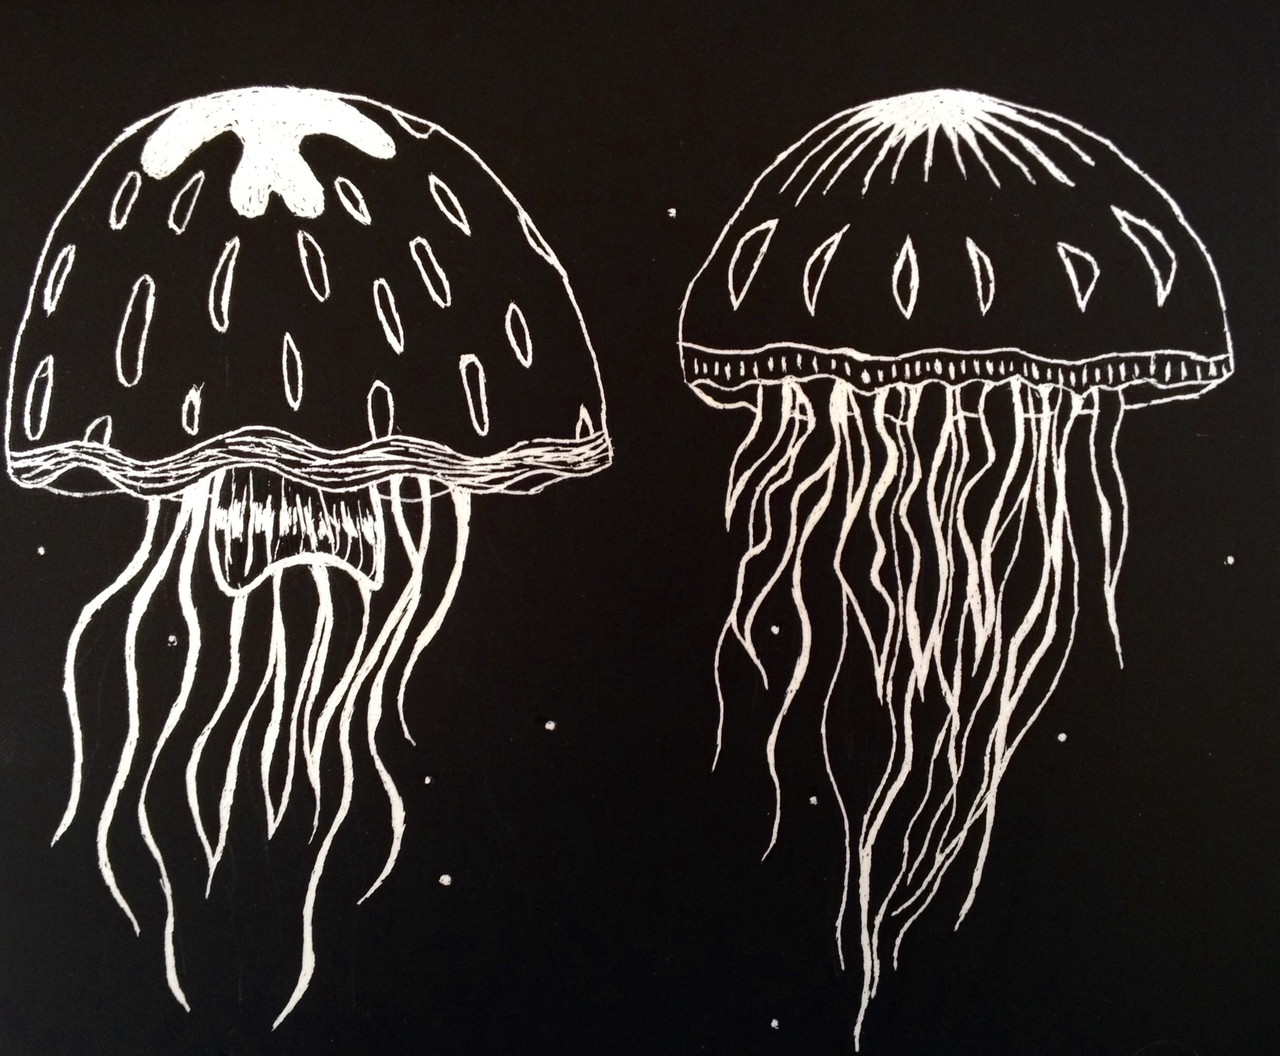 art, artwork, black and white, creative, deep sea, draw, jellyfish, paint, sketching, under water, water